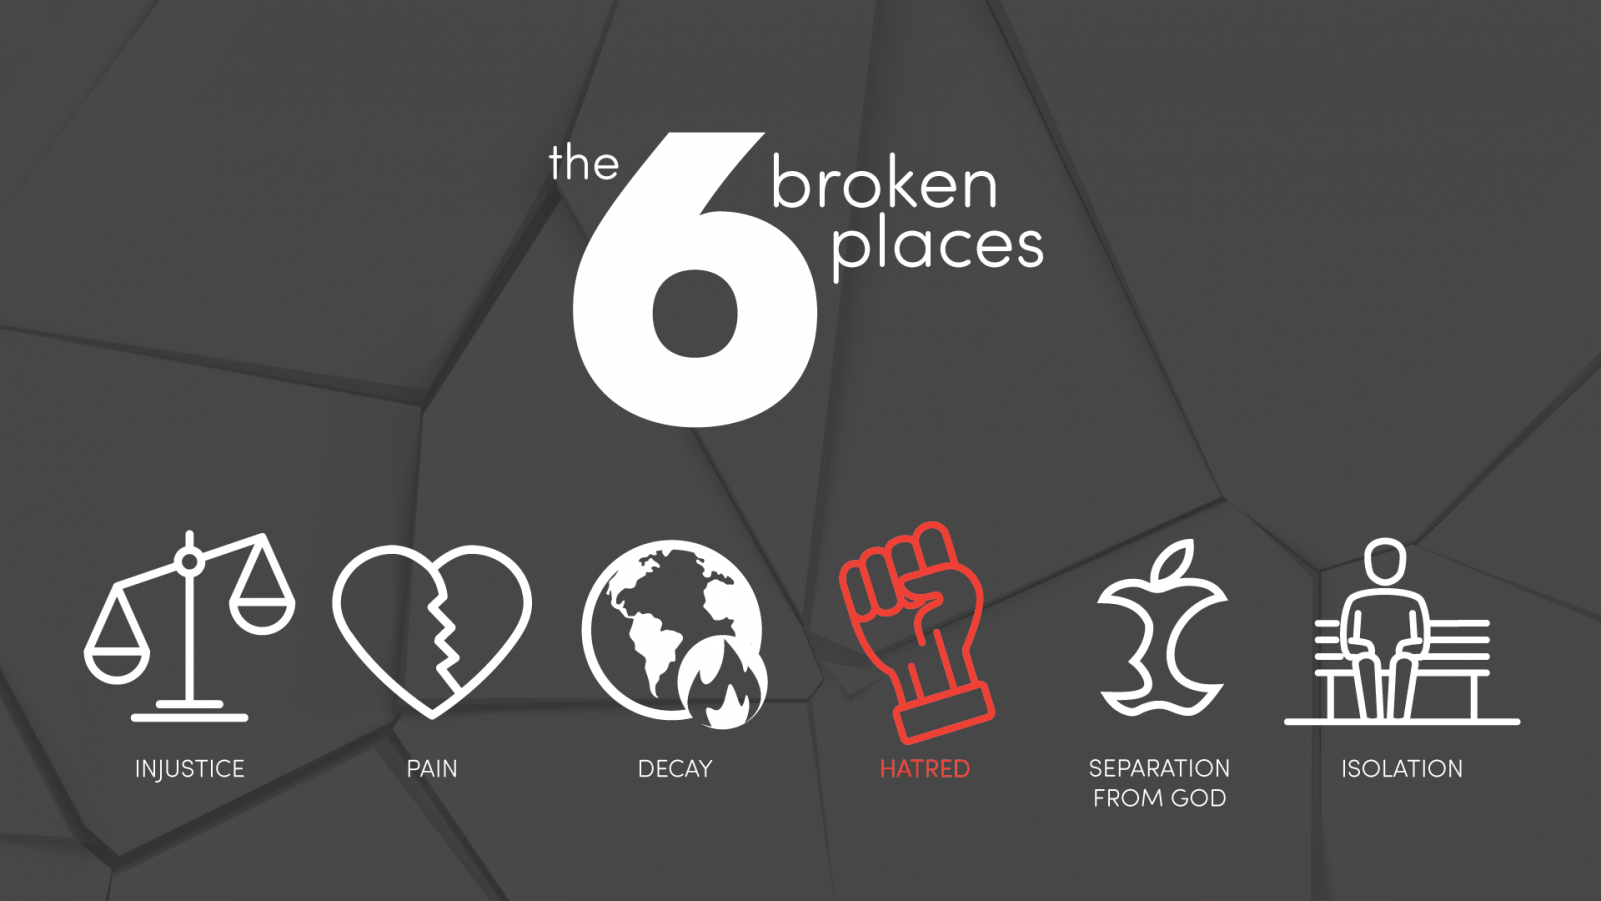 My Why To Live For: Healing the Broken Place of Hatred